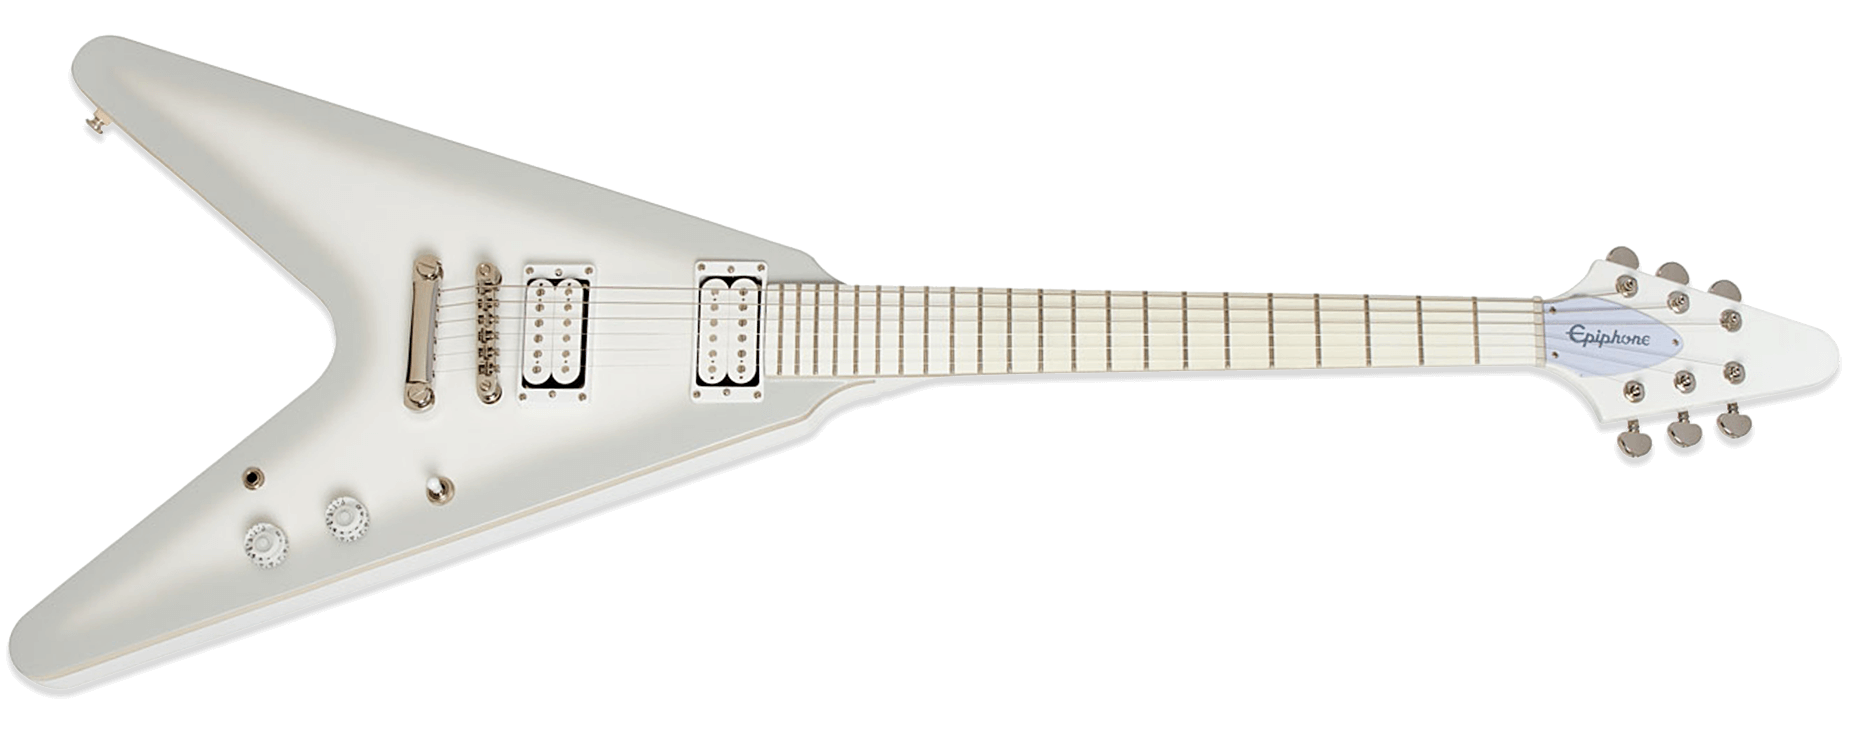 Epiphone Brendon Small Flying V Snow Falcon Snow Burst